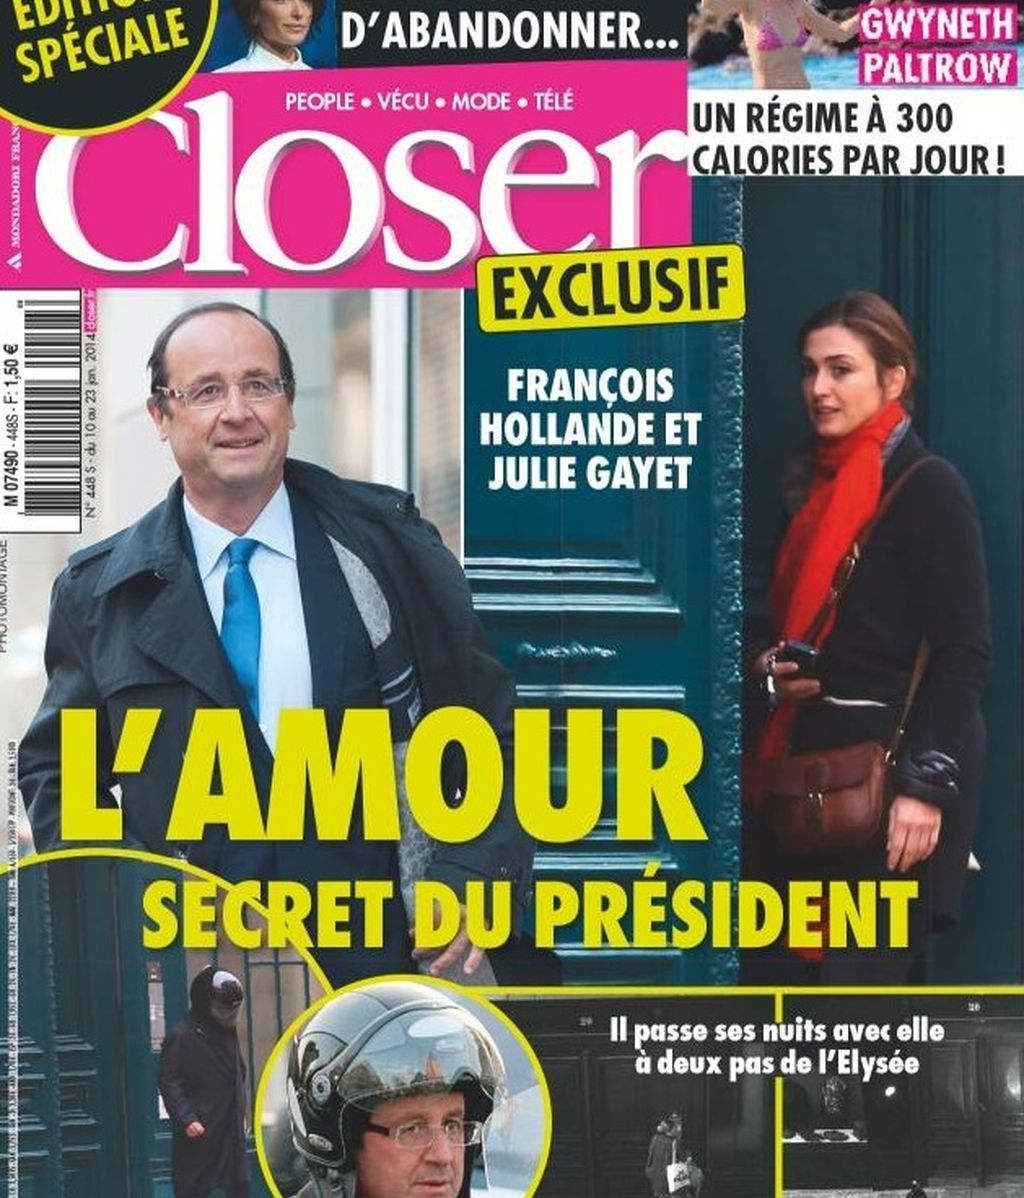 El presidente Hollande en la portada de la revista 'Closer'